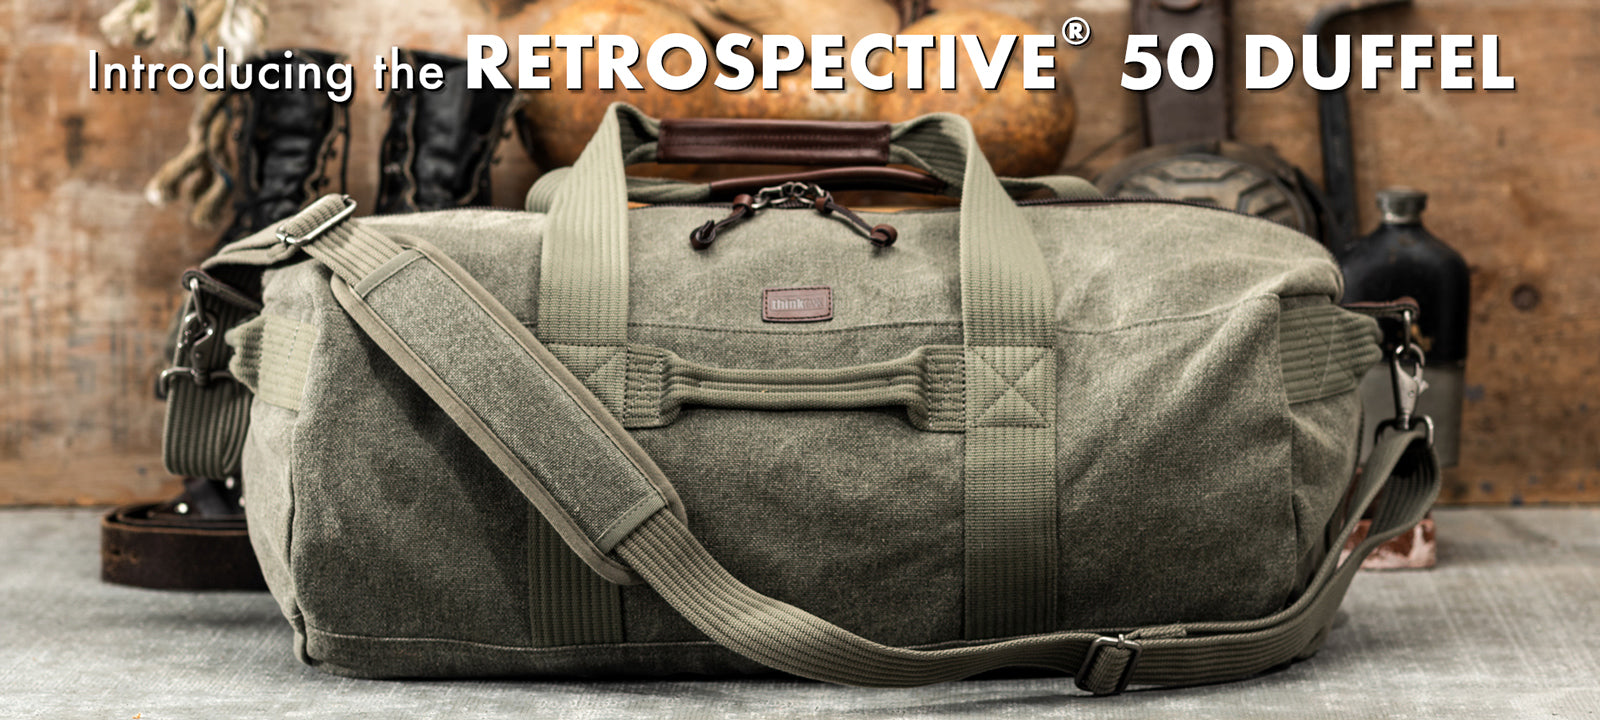 The Retrospective 50 Duffel is the perfect back road traveling companion.